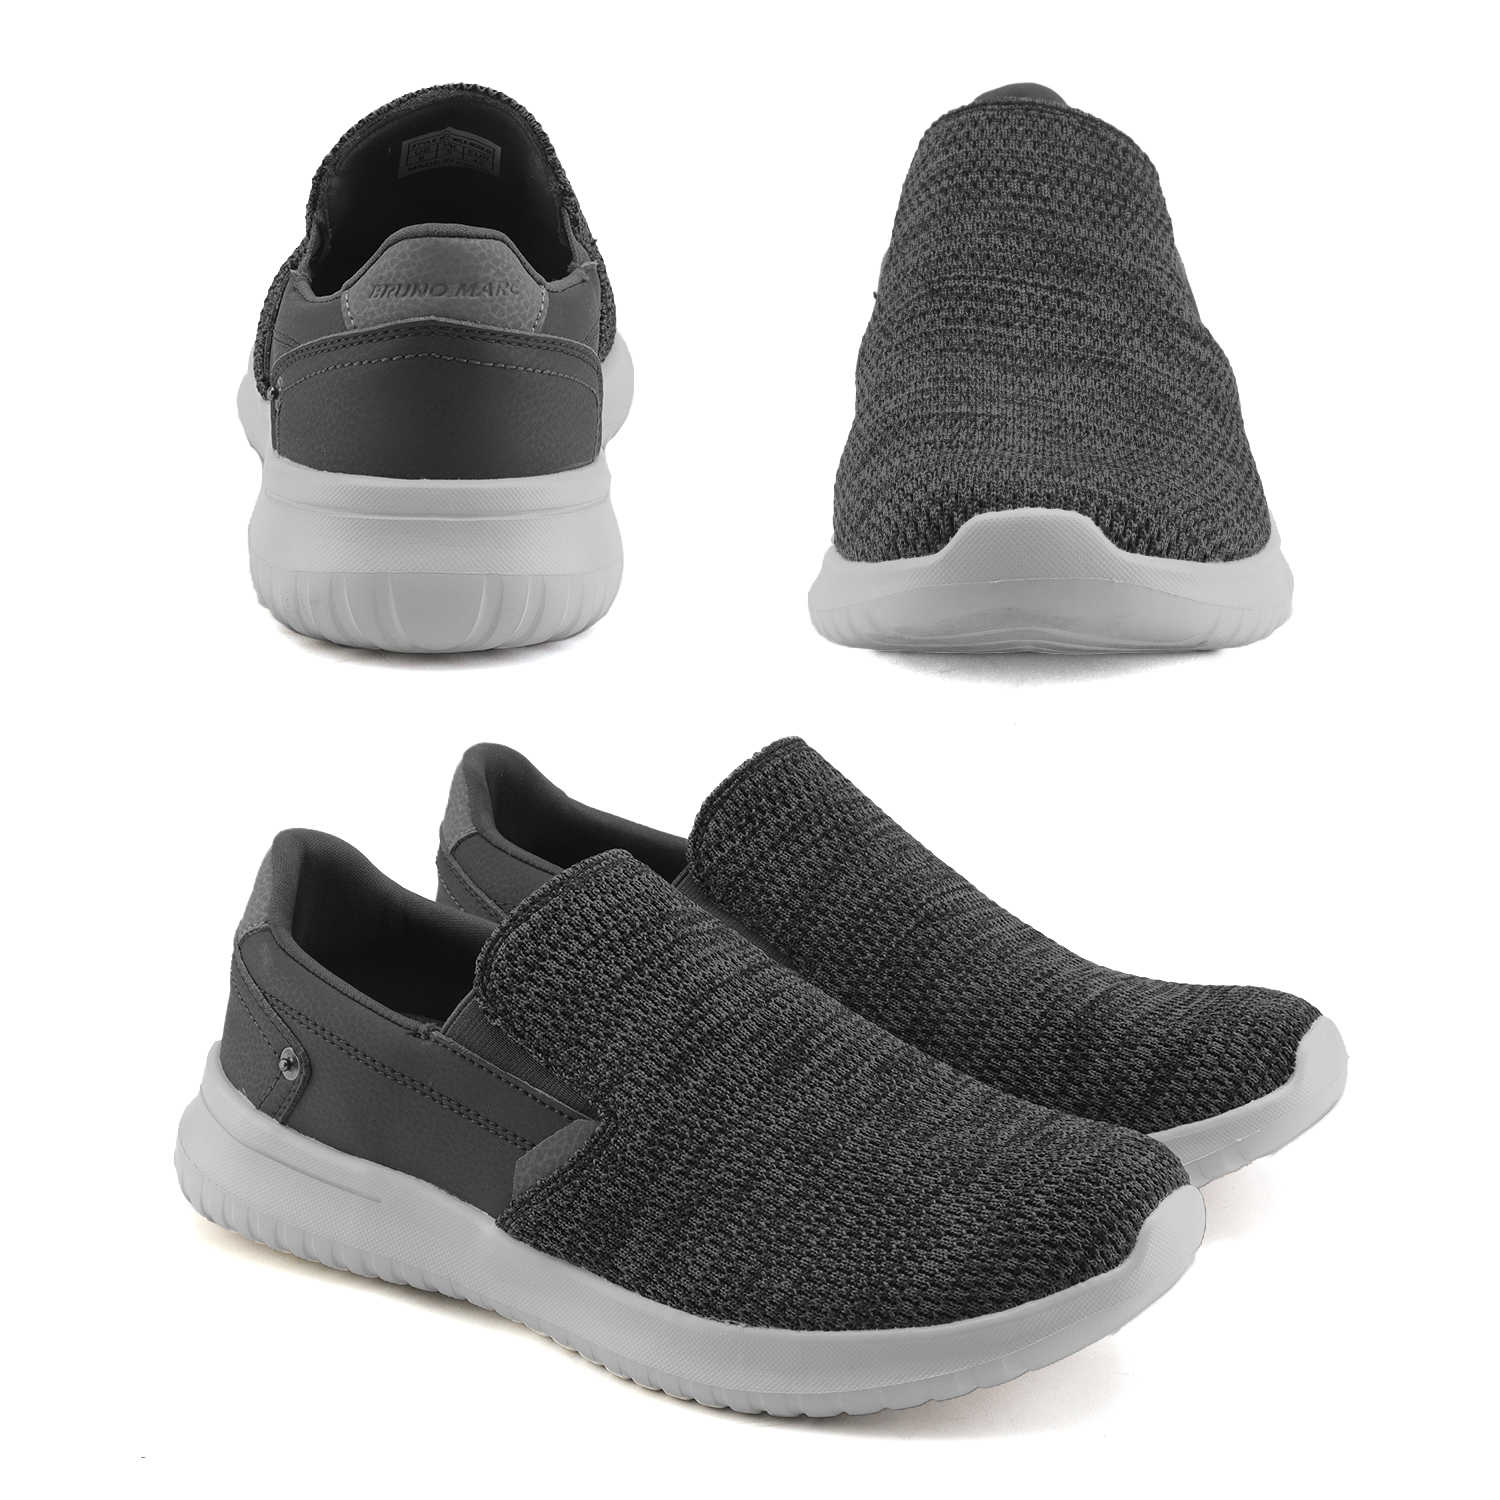 Bruno-Marc-Men-039-s-Slip-On-Walking-Shoes-Men-039-s-Sneakers-Men-Shoe-Running-Casual thumbnail 13